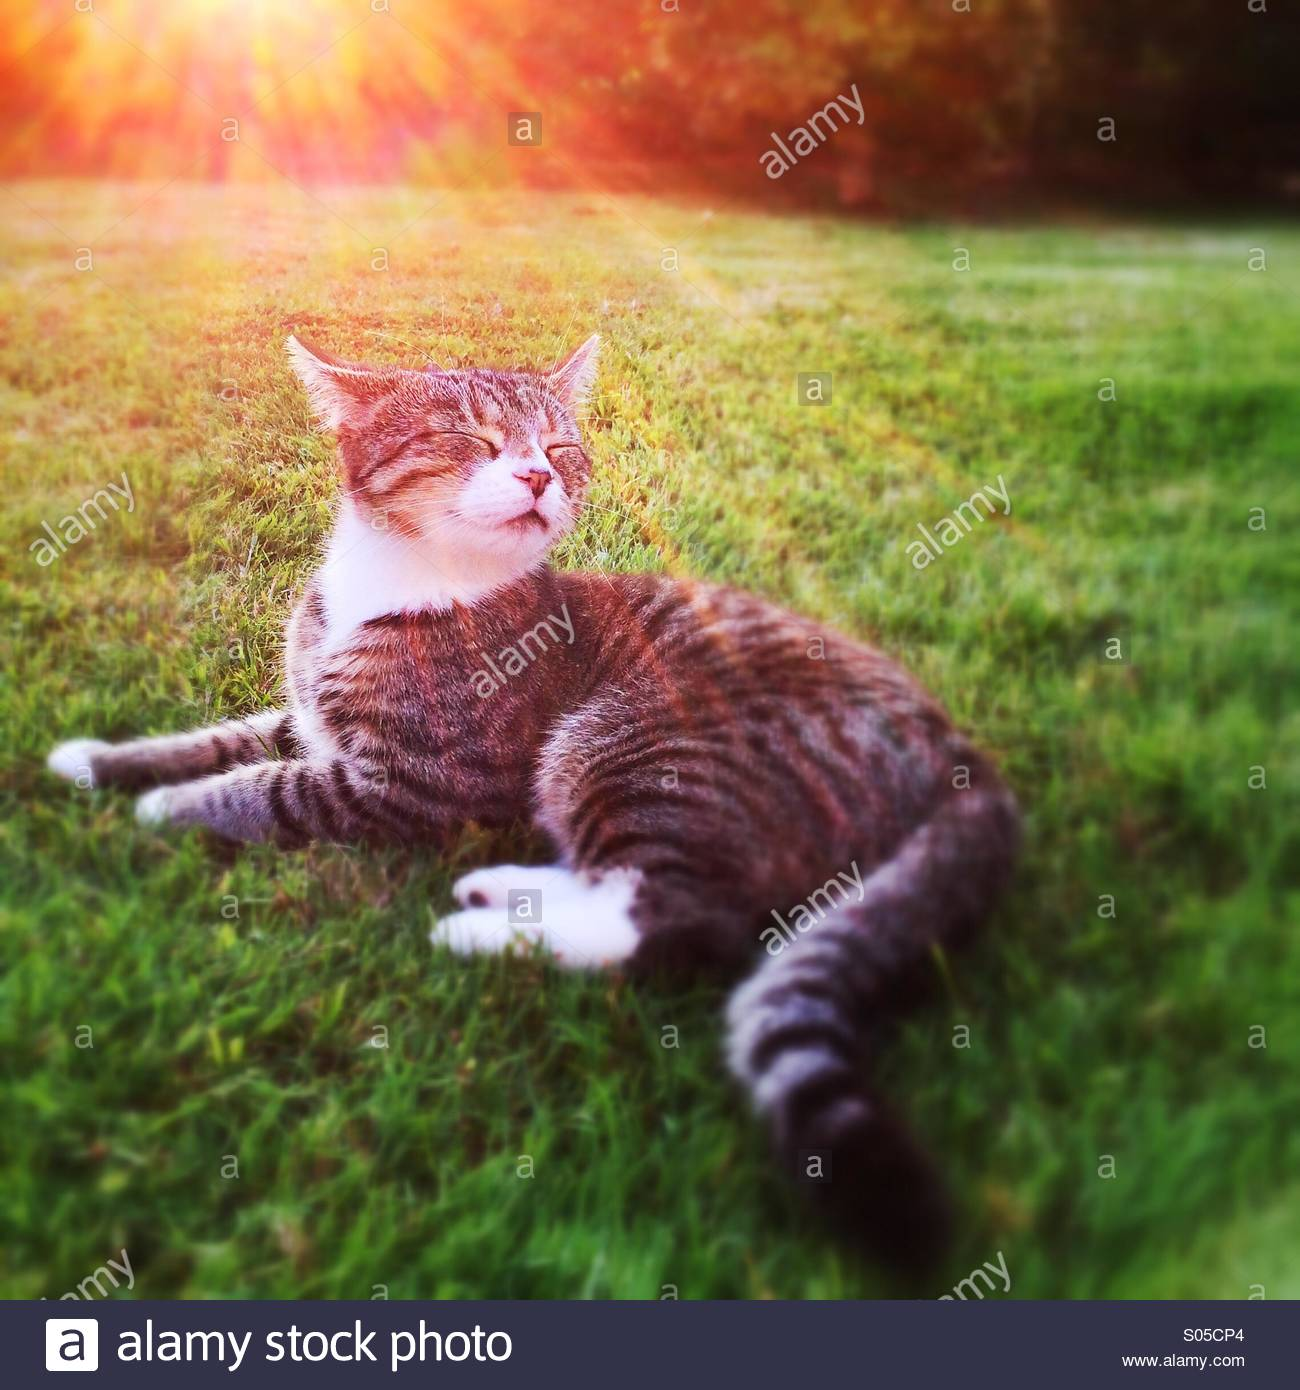 Cat basking in the sun - Stock Image